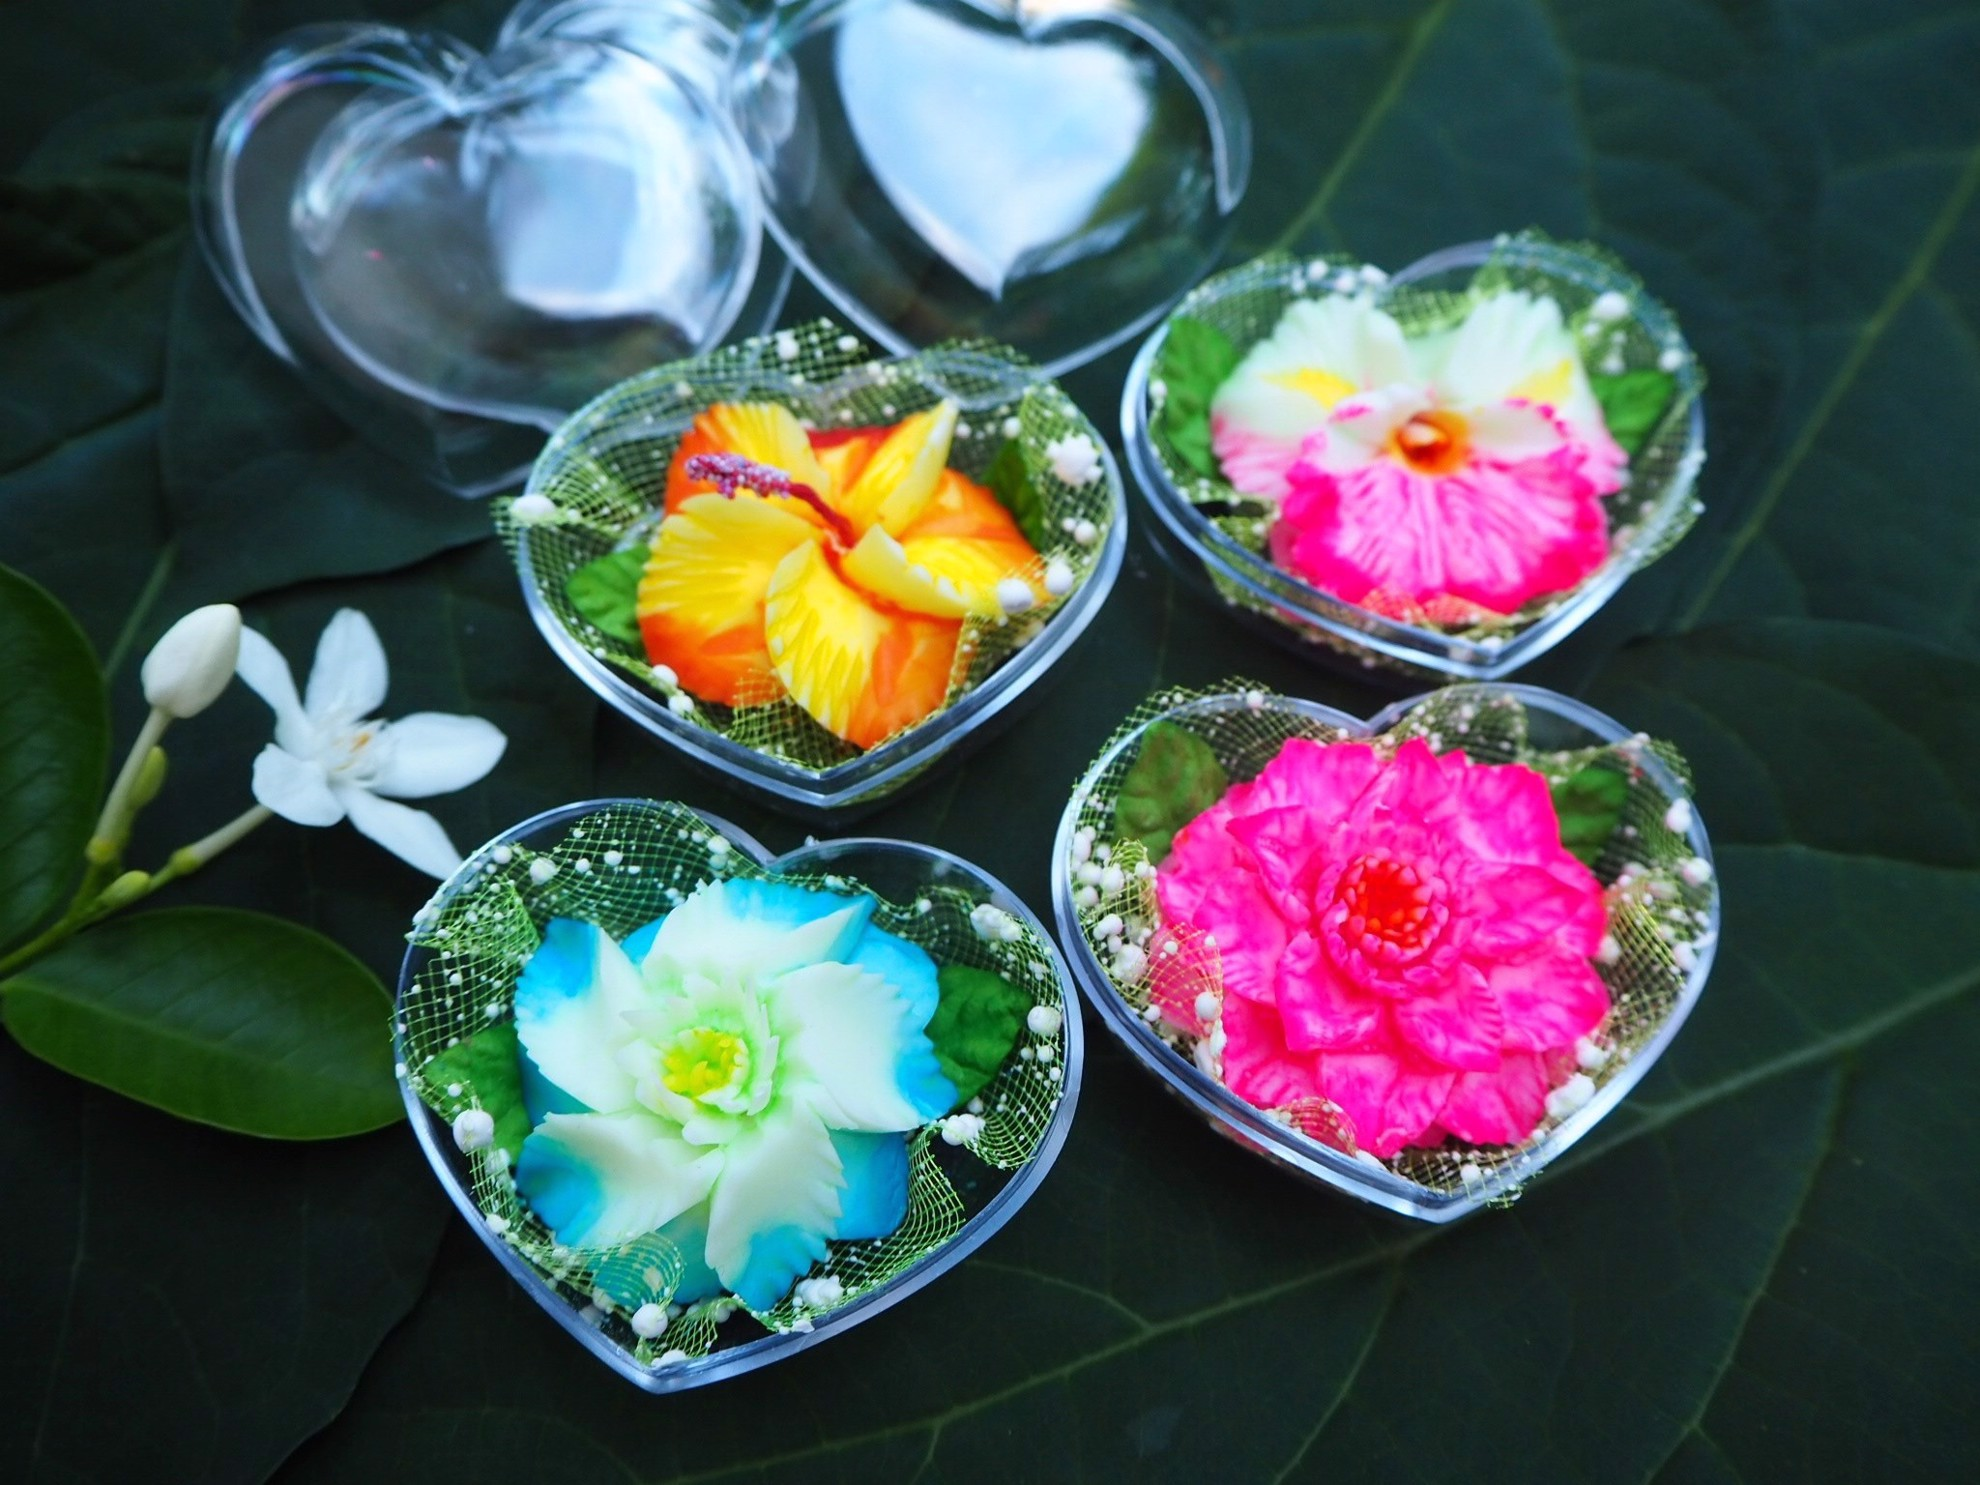 Picture of Bright & Colorful Thai Flower Decorative Soaps (4) Hand Carved, Jasmine Aroma Essential Oil, Scented Soap Carving